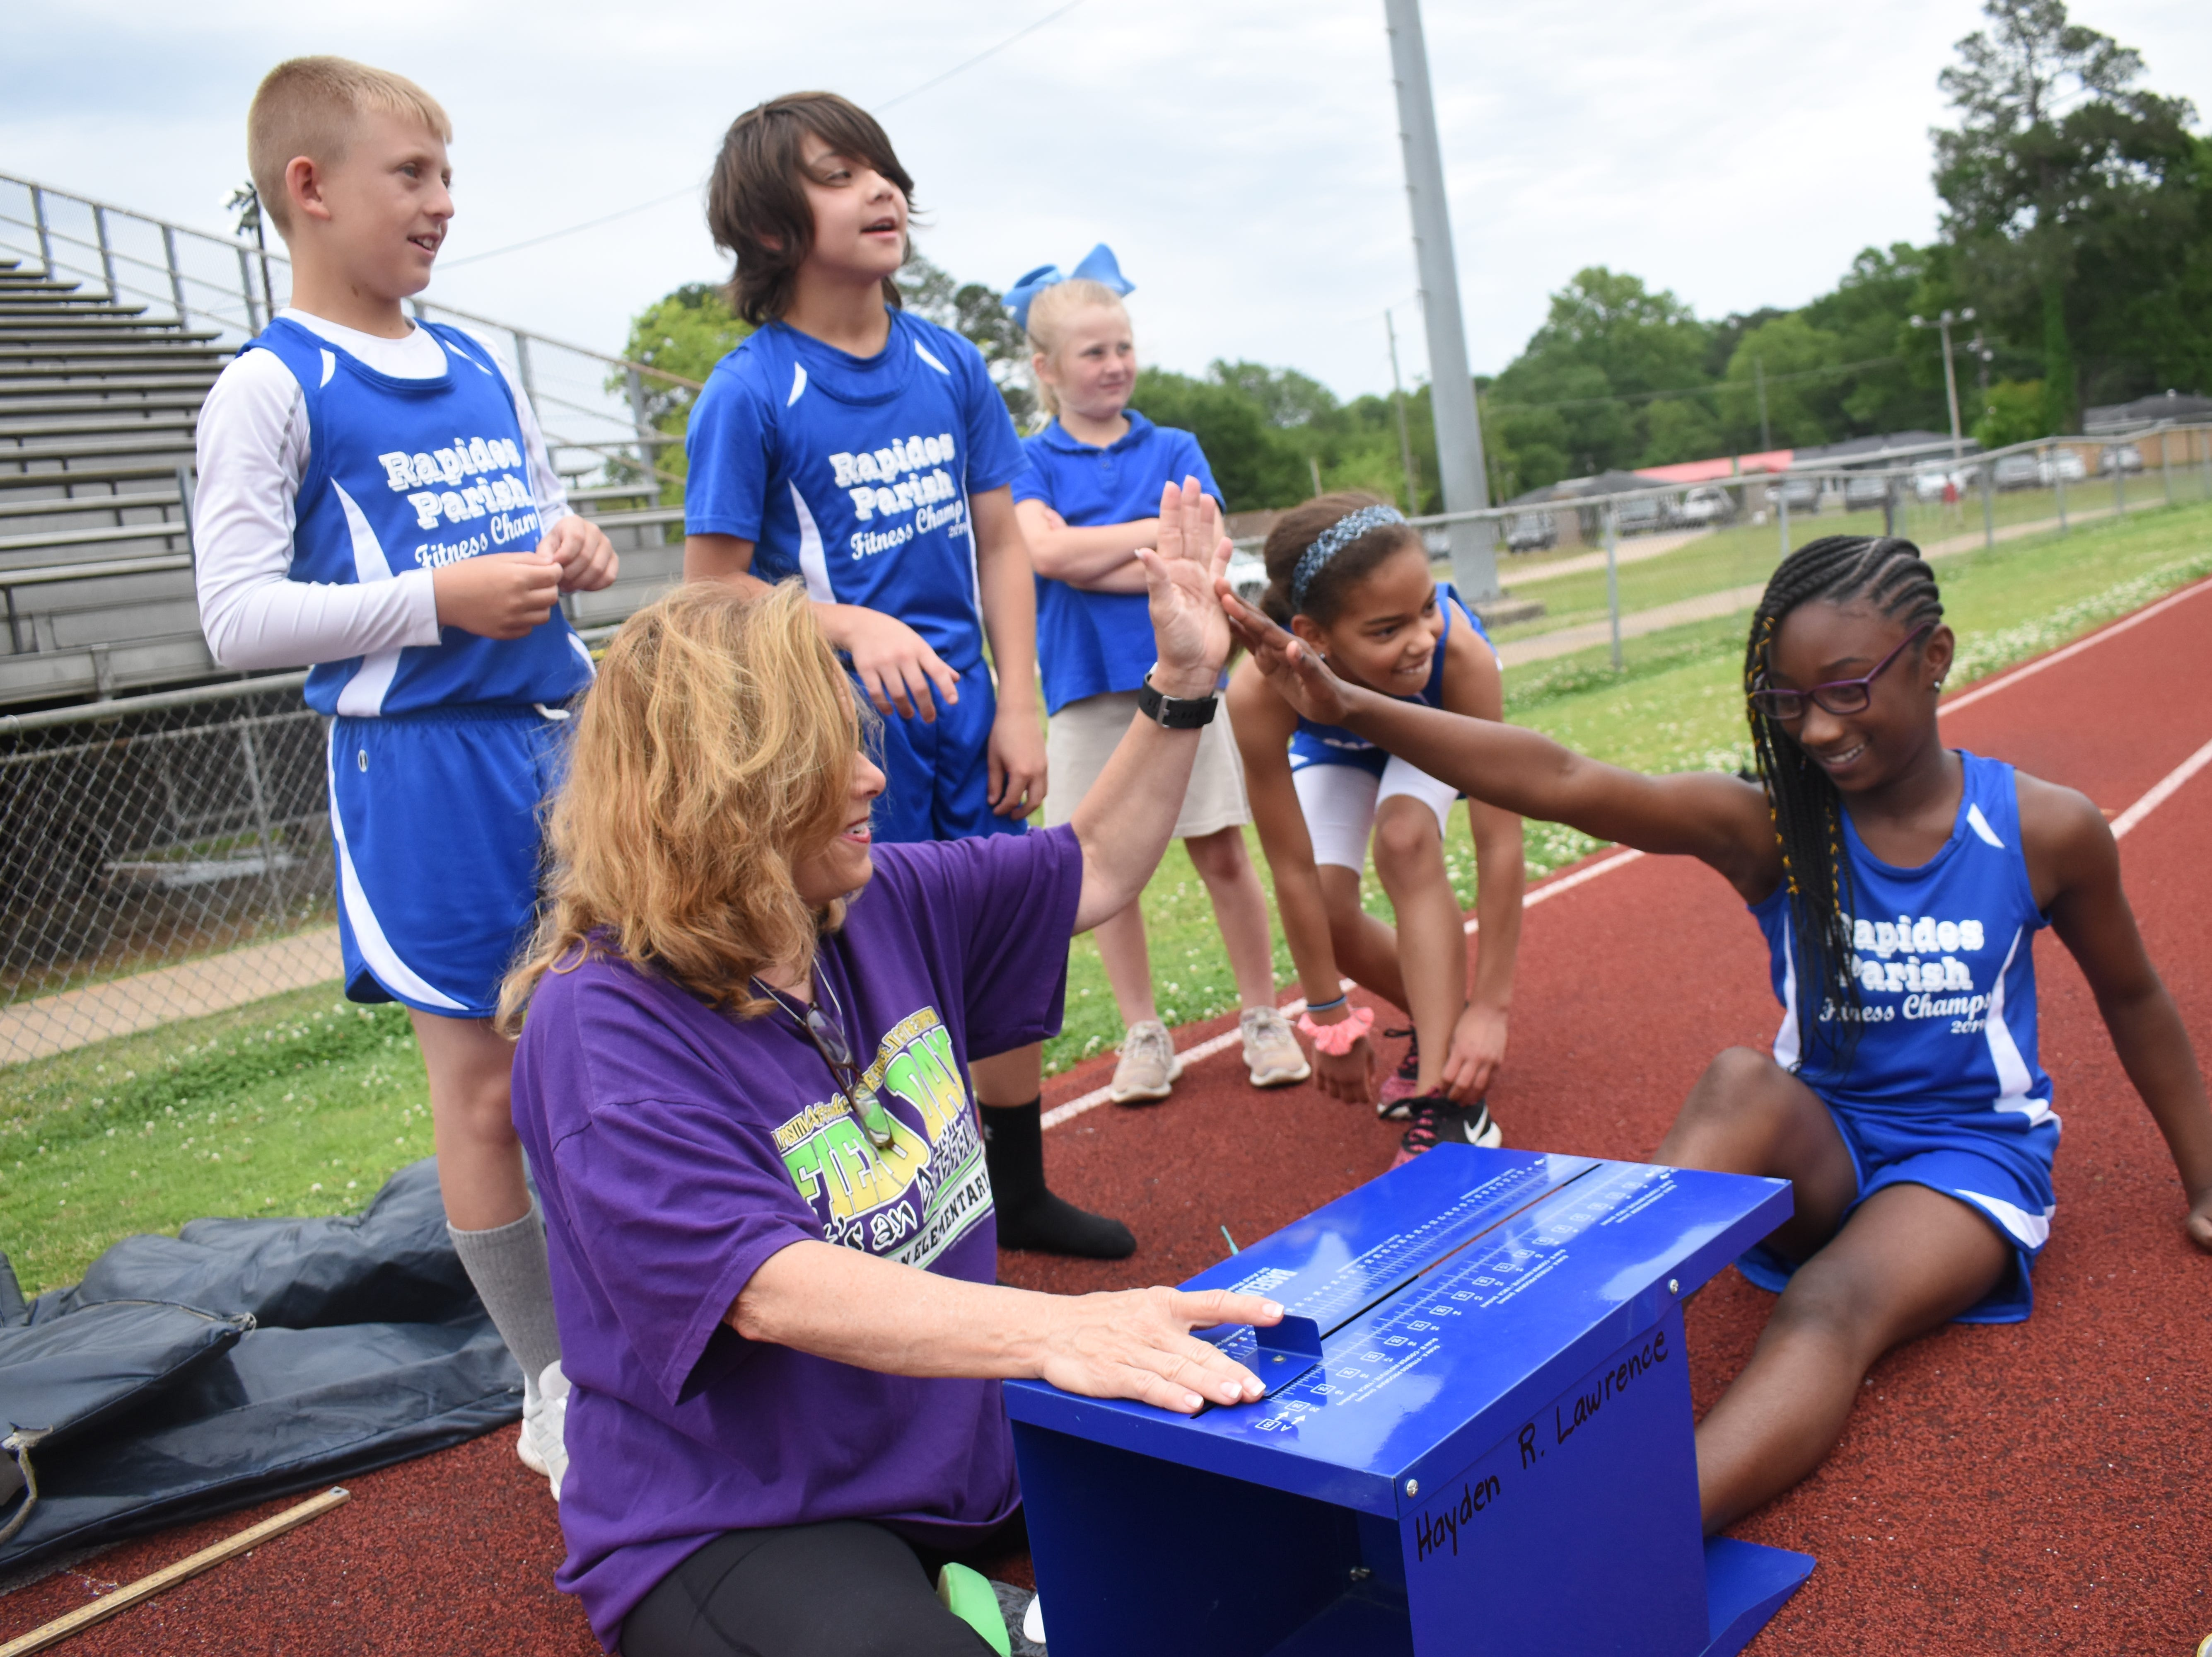 Margaret LaBorde, Rapides Parish Fitness team coach and coordinator (left) congratulates Amari Dupar of Cherokee Elementary School after she completed a sit and reach. Amari and other five other Rapides Parish elementary school students will compete in the 2019 State Championship Fitness Meet to be held Saturday, April 27, 2019 at Alexandria Senior High School. The meet is part of the Governor's Council on Fitness and Sports. Students from throughout Louisiana will compete in seven events: 50-yard dash, sit and reach, pull-ups,  shuttle run, curl-ups (sit-ups), standing long jump, and the 600-yard run. For the past three years, the Rapides Parish Fitness Team has placed first at the meet. Dean was the highest scoring boy last year and won the title of 2018 Mr. Fitness for the State of Louisiana. The meet will be from 10 a.m. to 2 p.m.